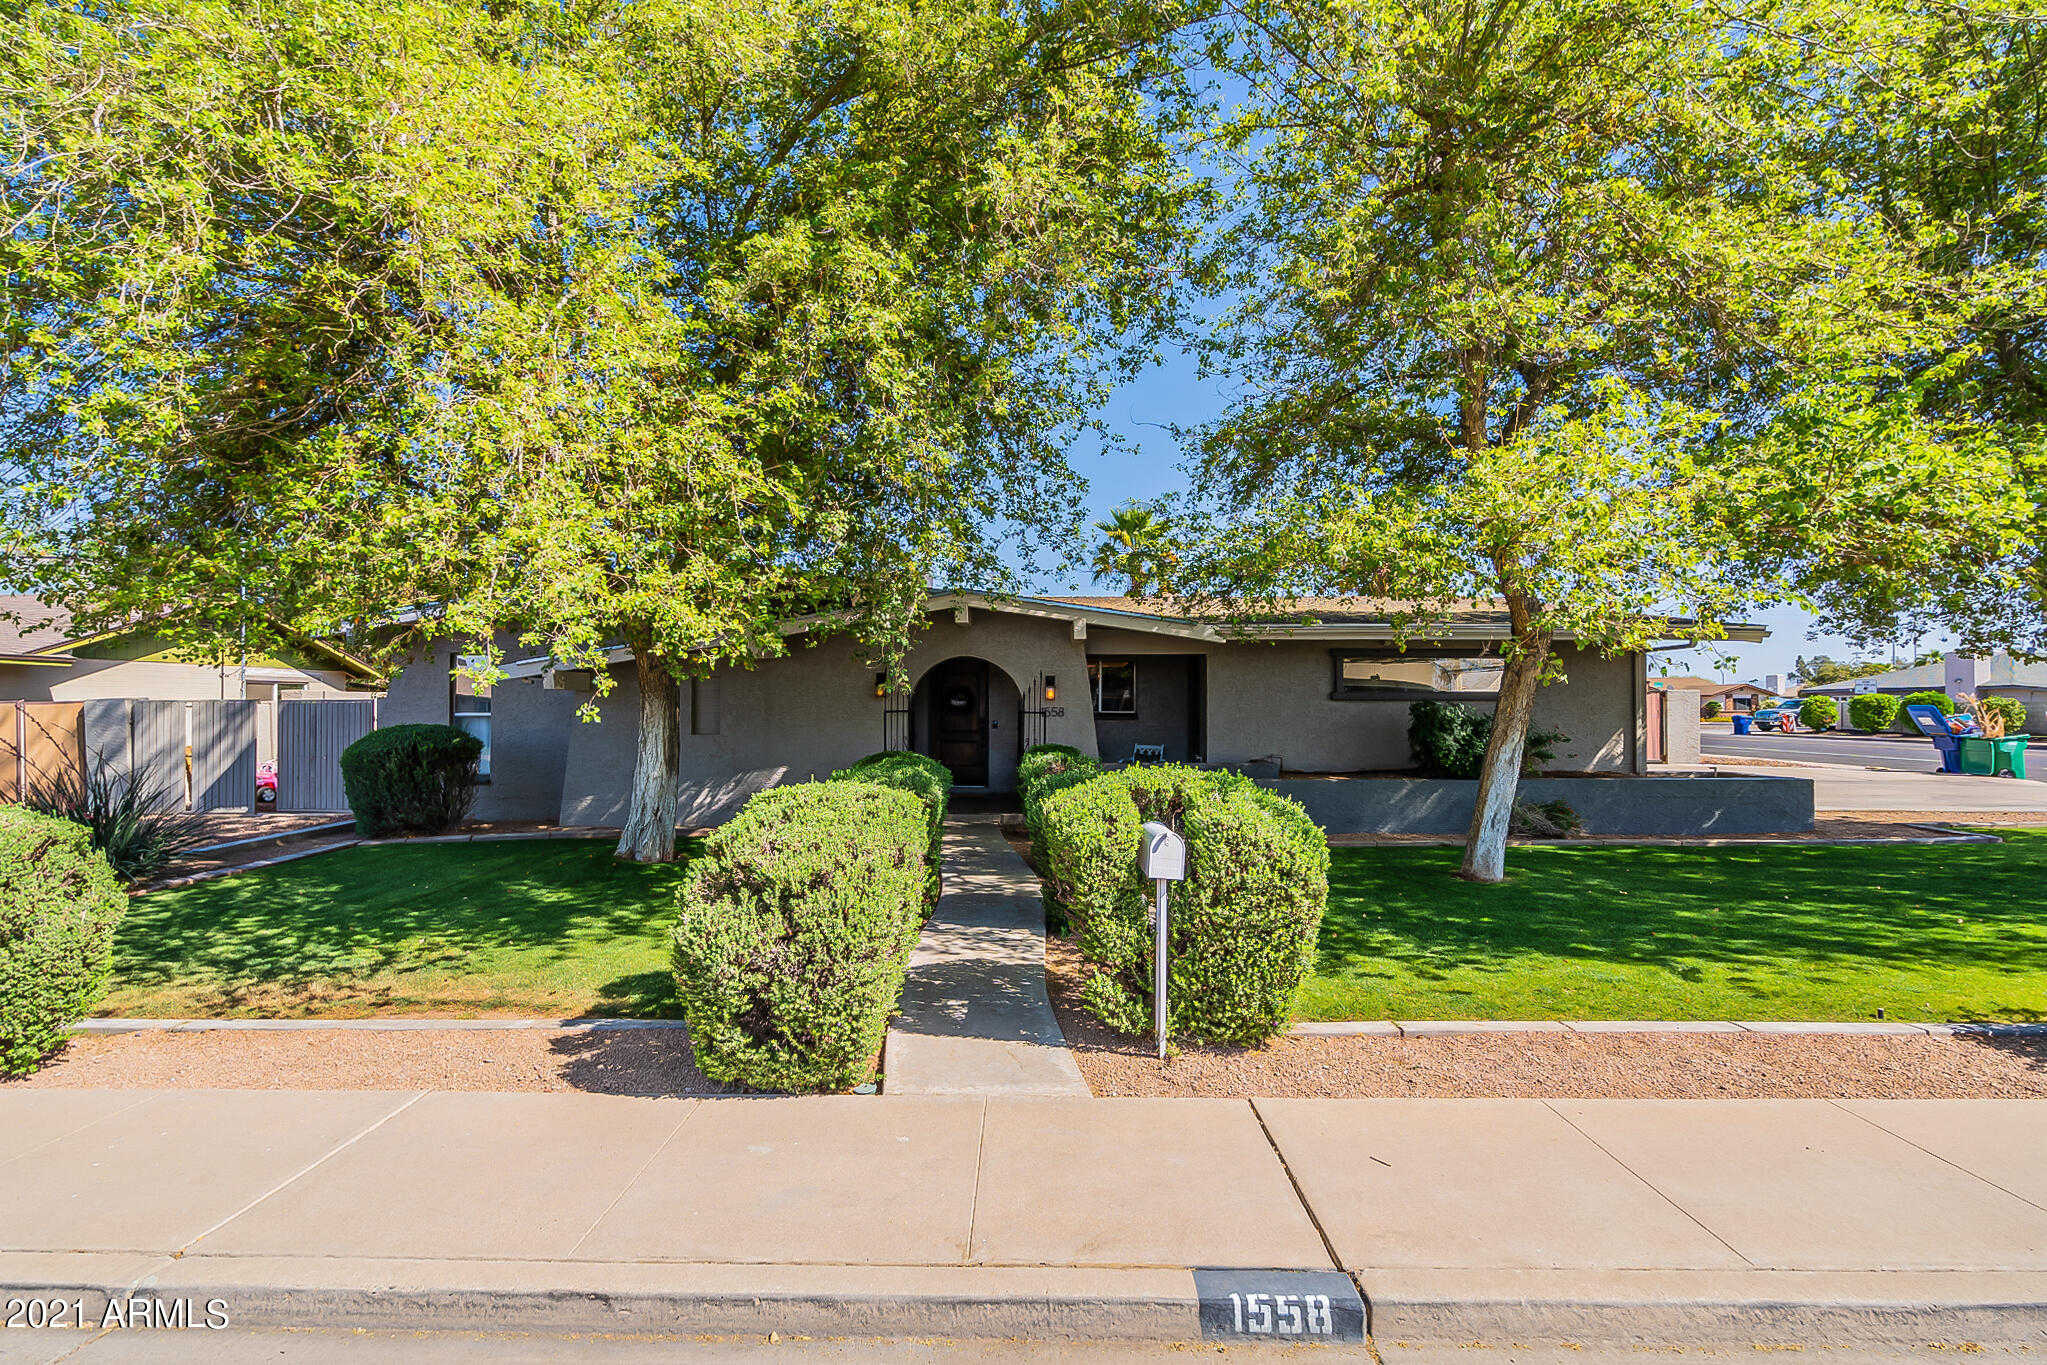 $415,000 - 3Br/2Ba - Home for Sale in Emerald Acres, Mesa